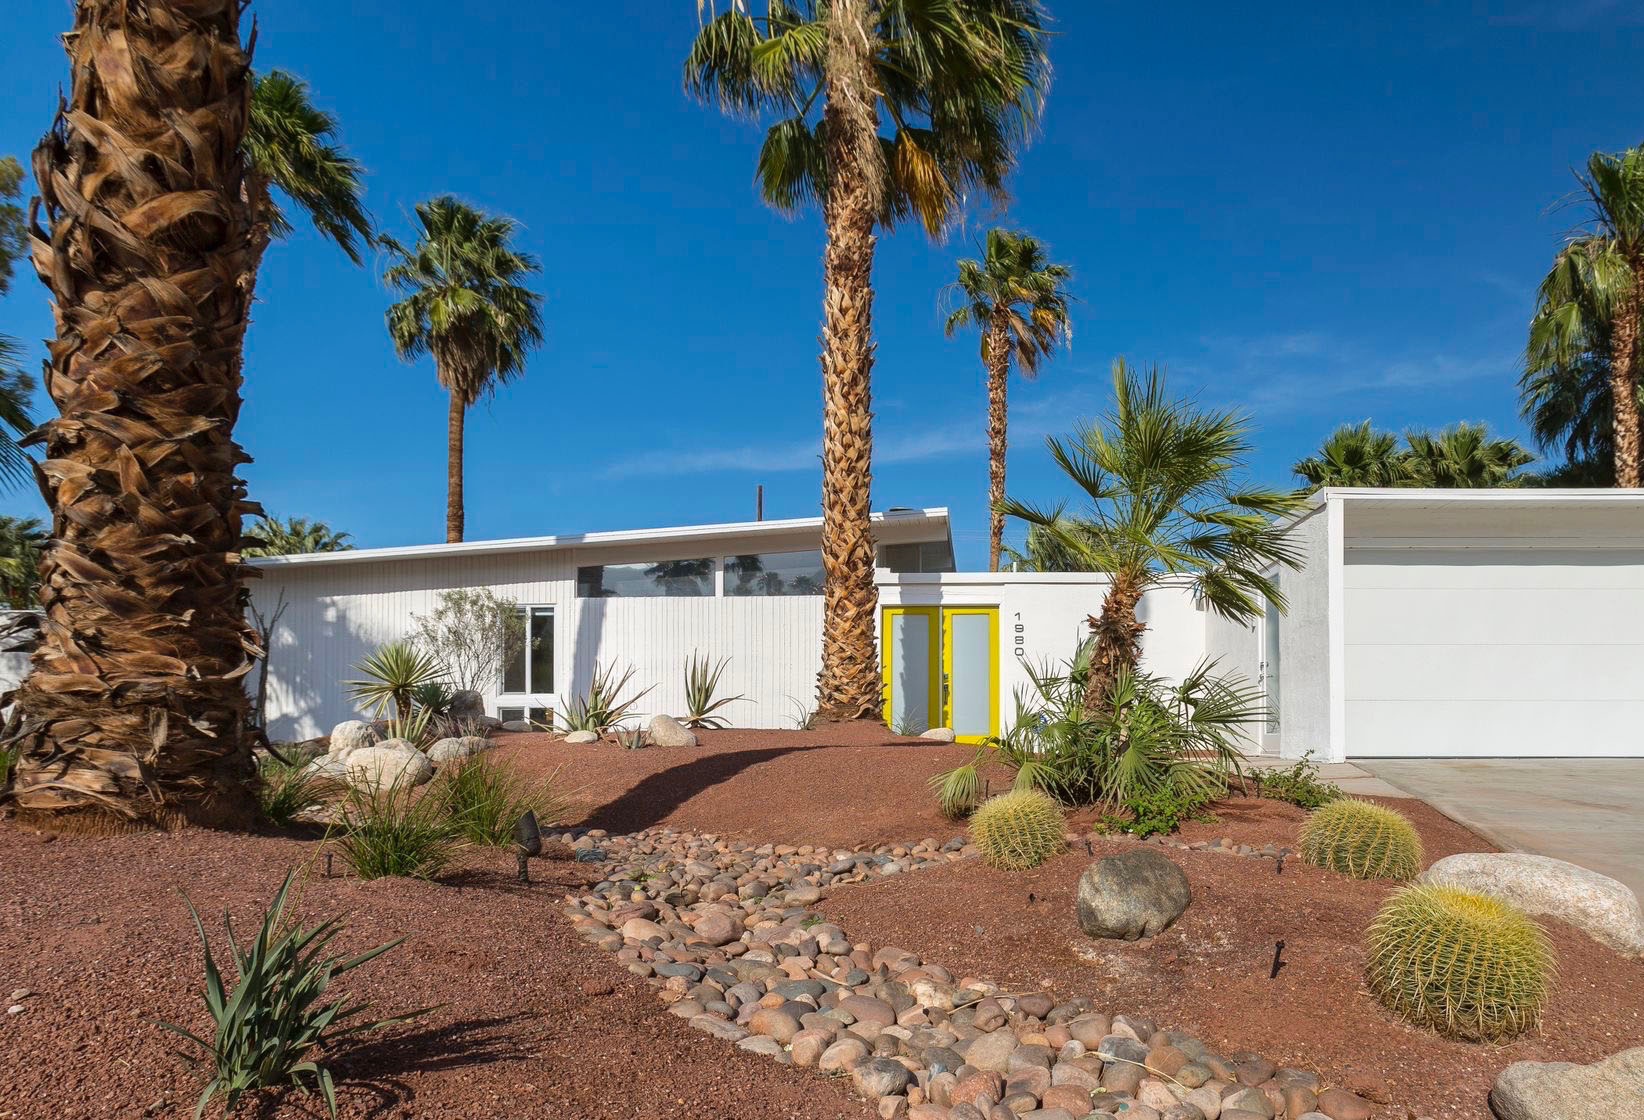 The xeroscape yard of a Palm Springs Meiselman home. Source